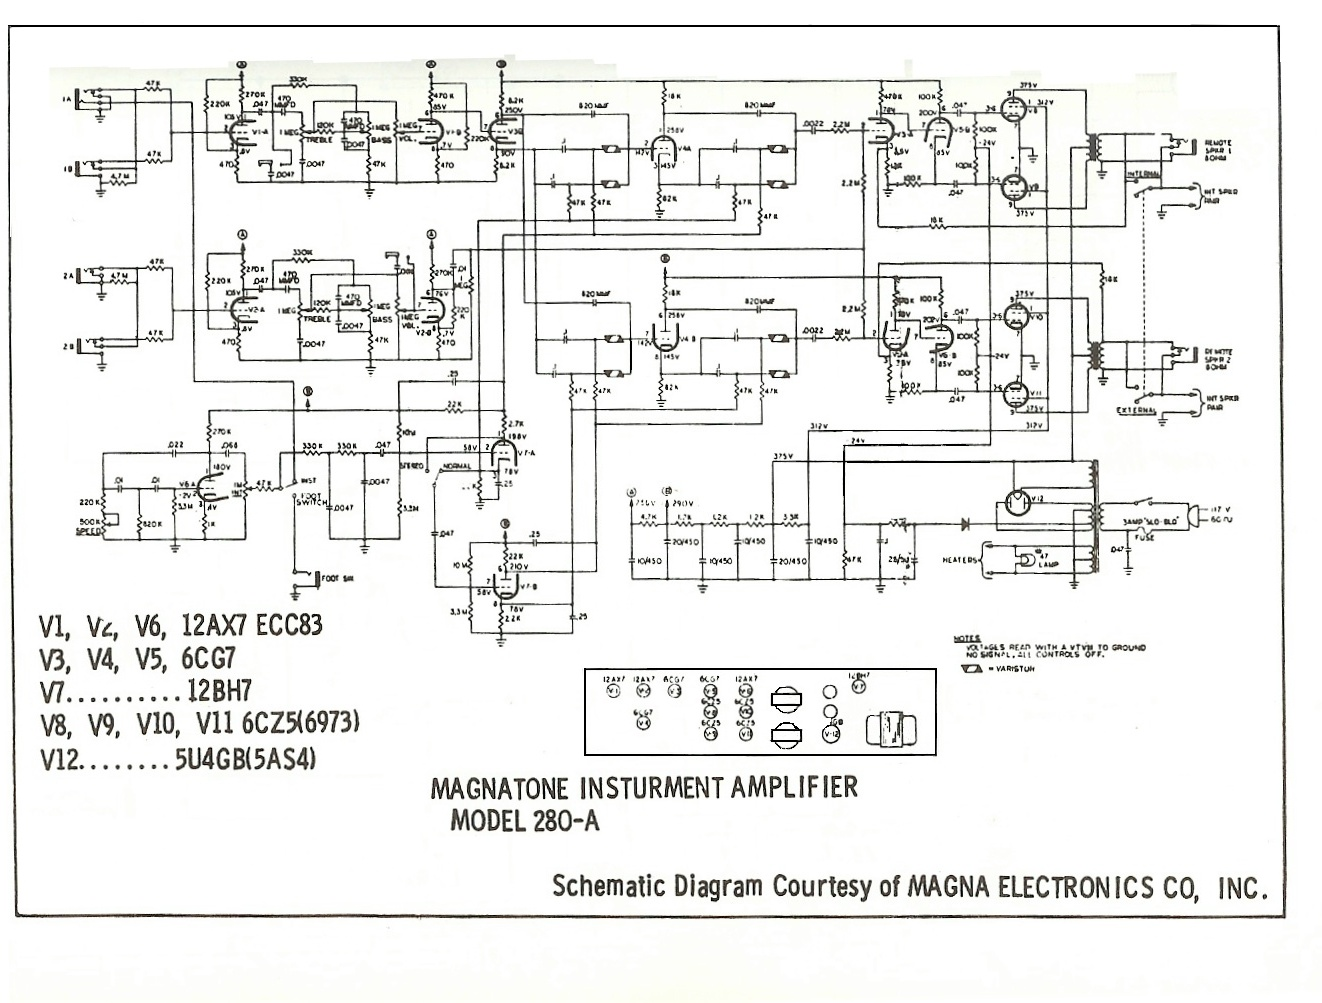 06 Bmw 330i Fuse Box Diagram. Bmw. Auto Wiring Diagram